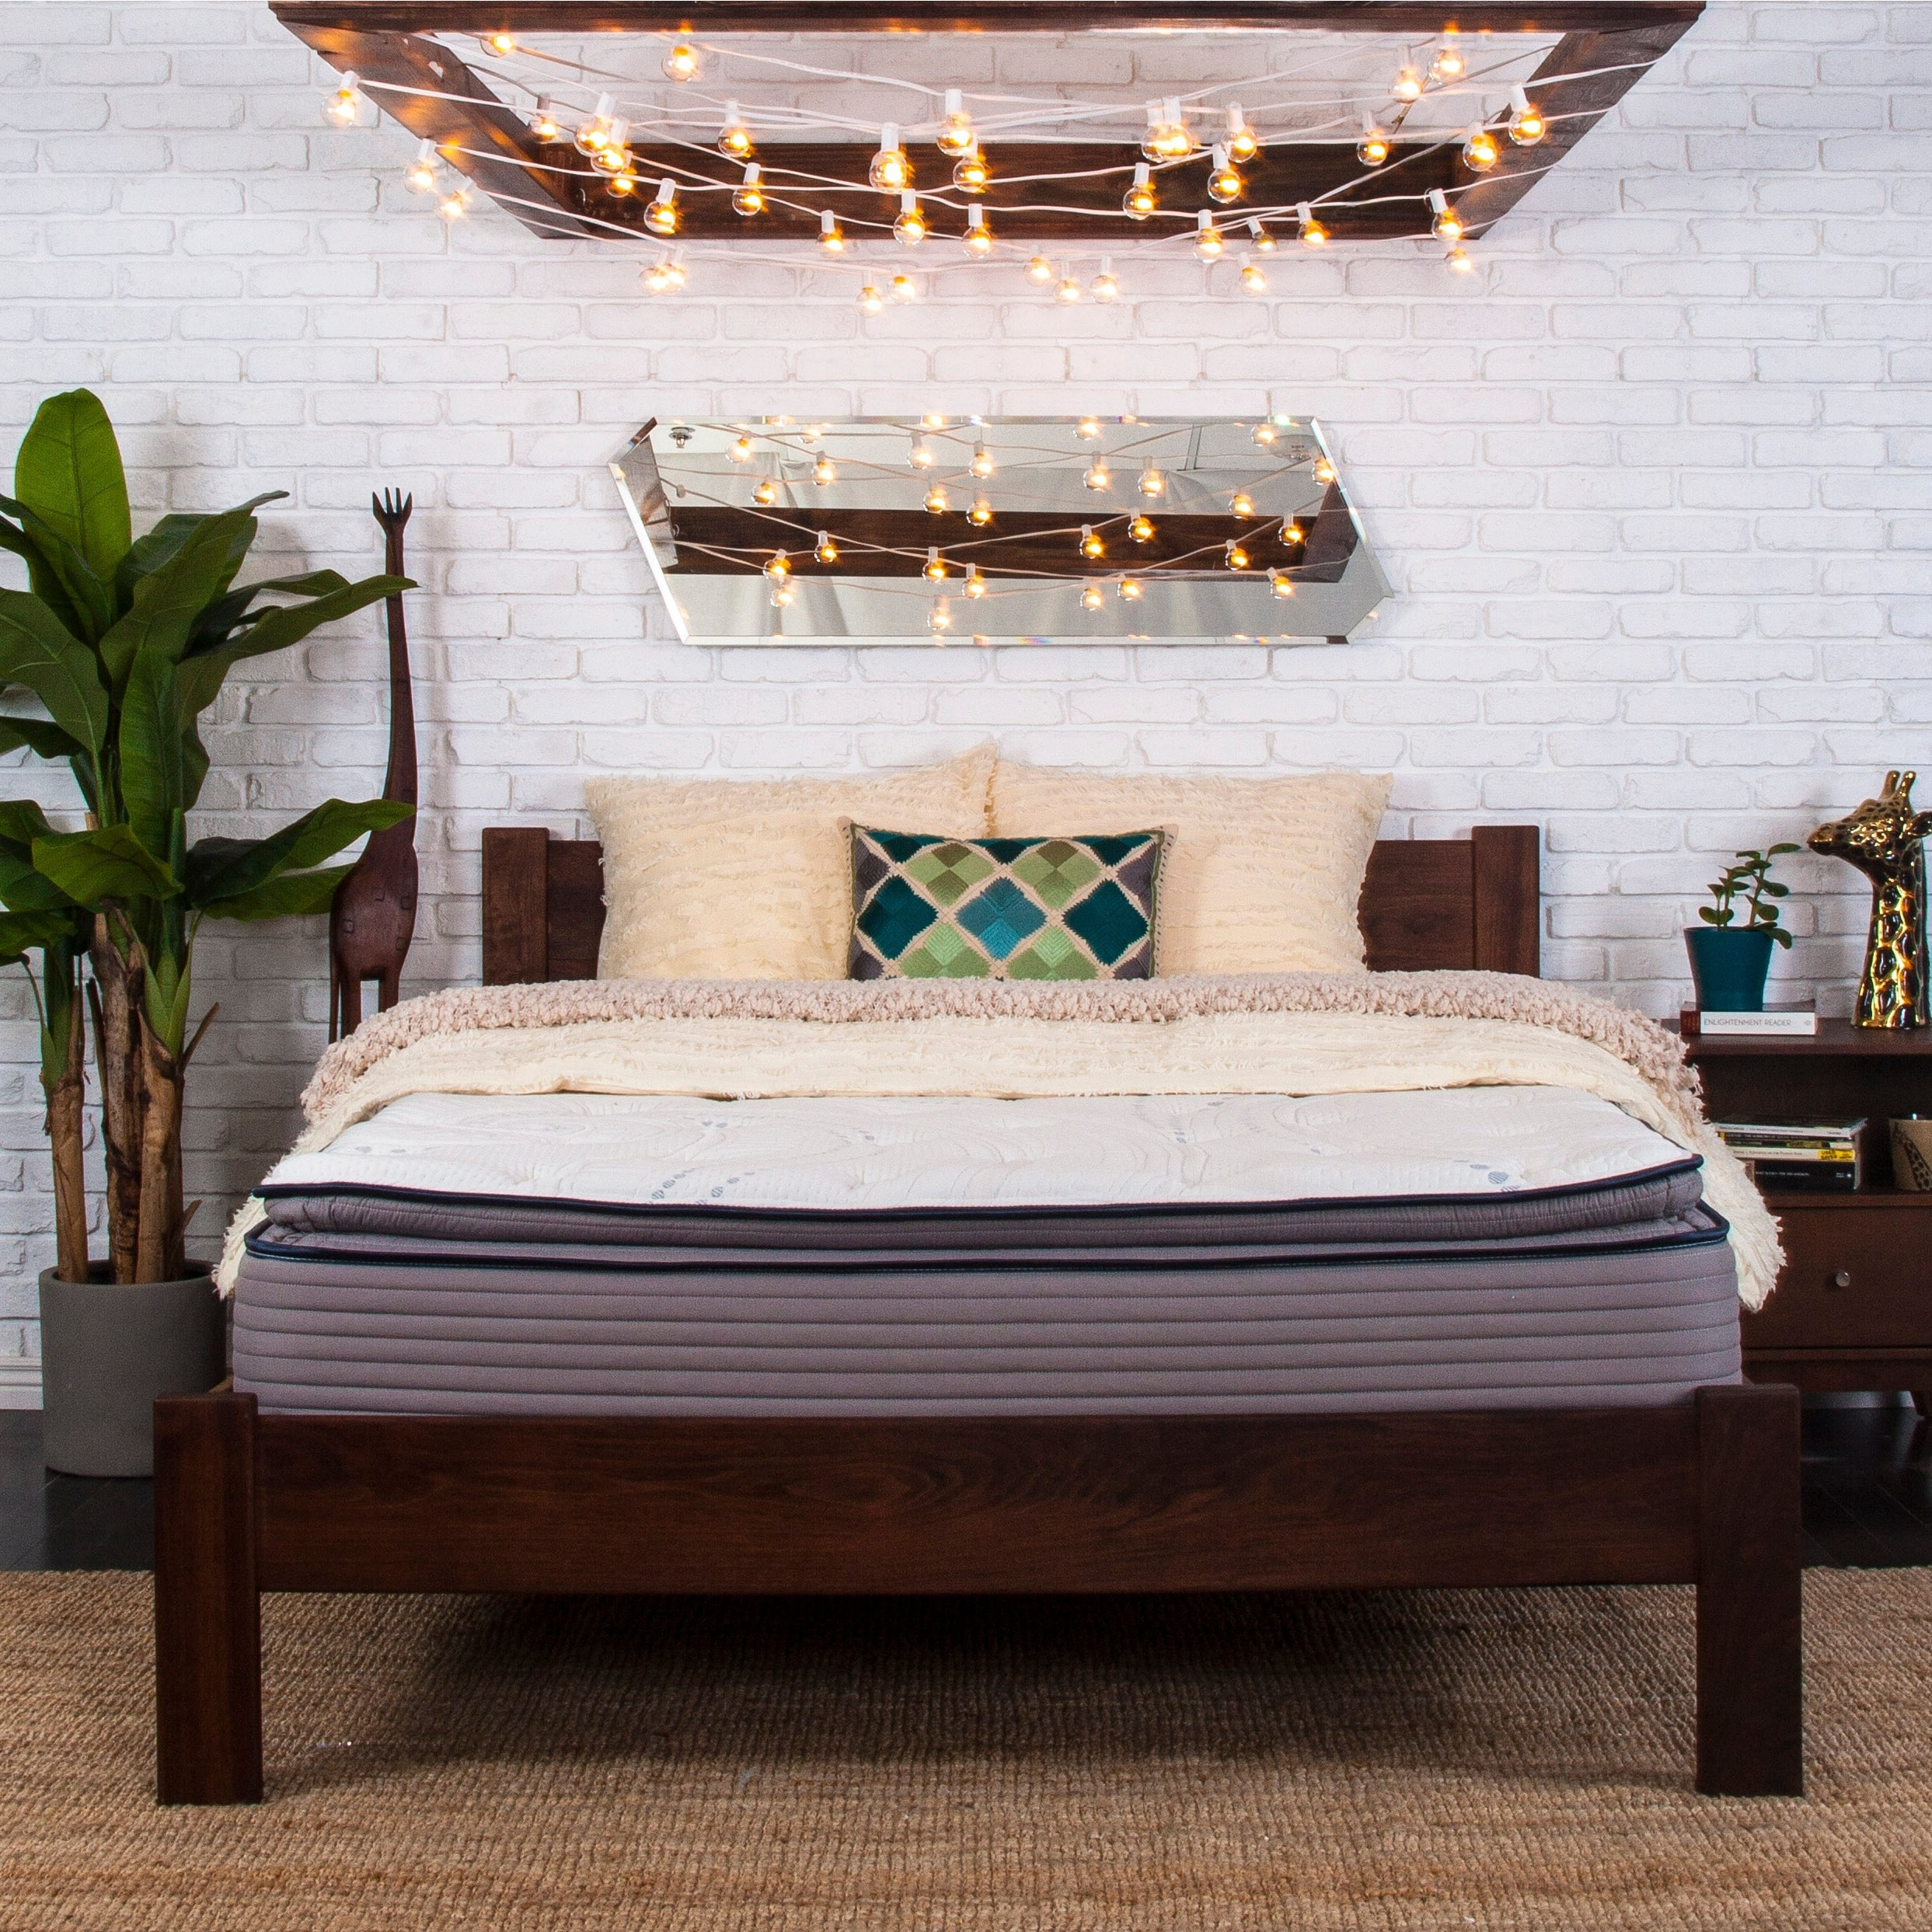 platform bed mattress of mattresses beds memory cover large spring king box bedroom for foam best full size without